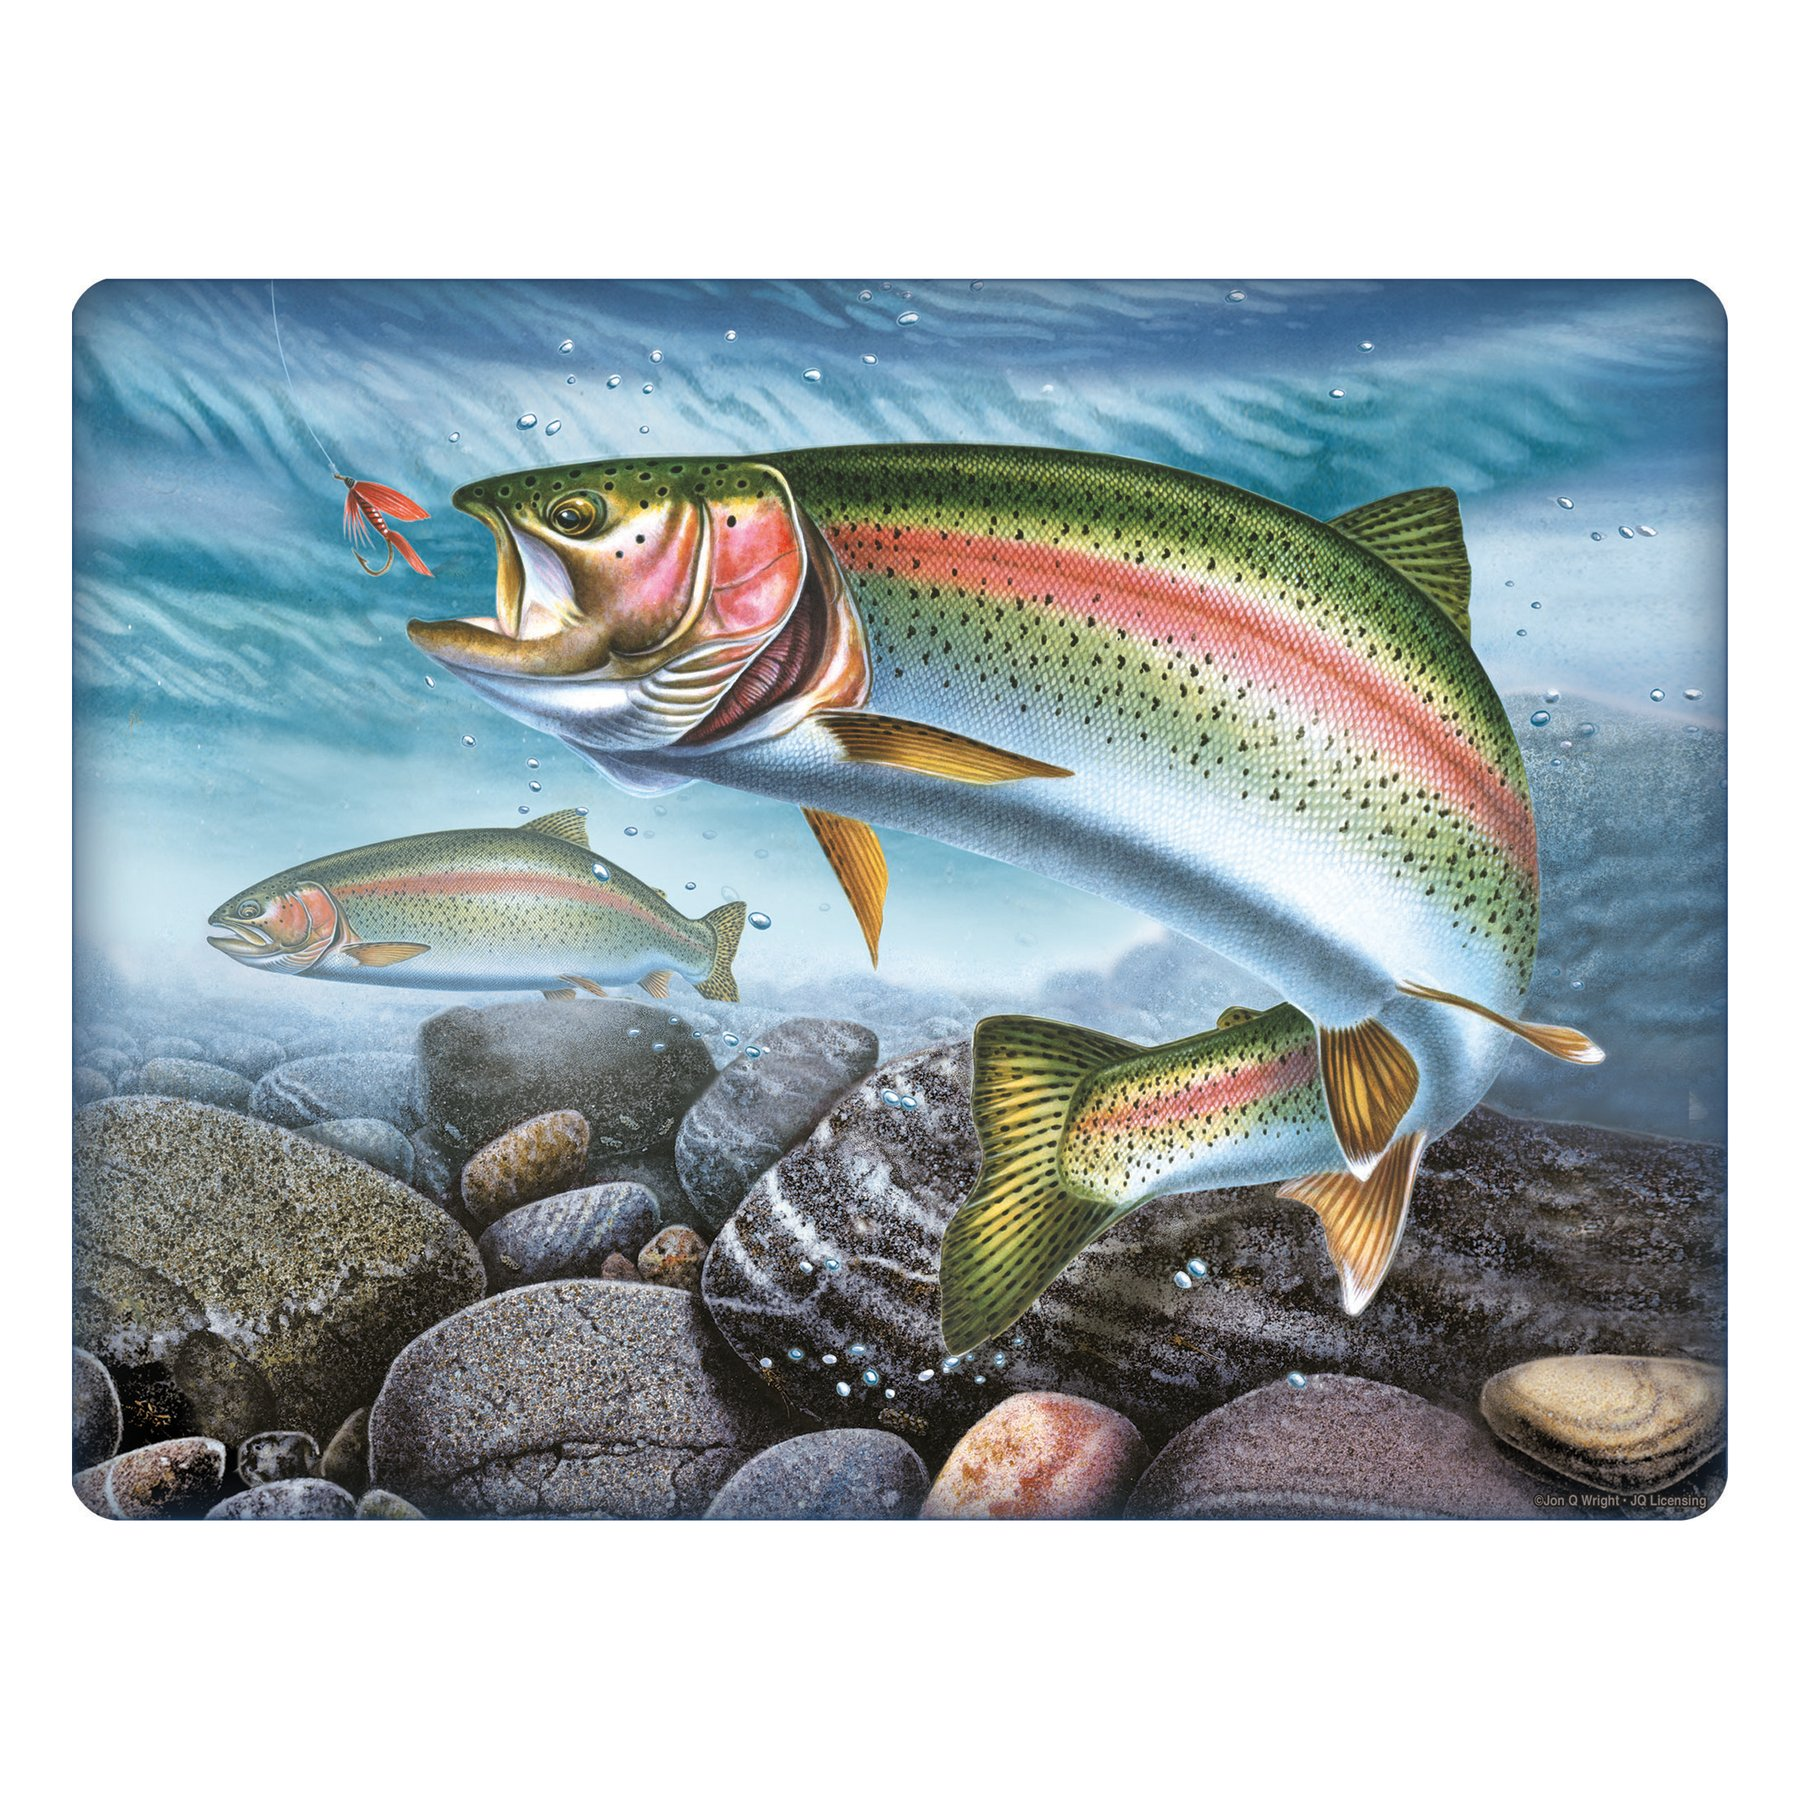 Rivers Edge - Tampered Glass Cutting Board 12in x 16in Rainbow Trout